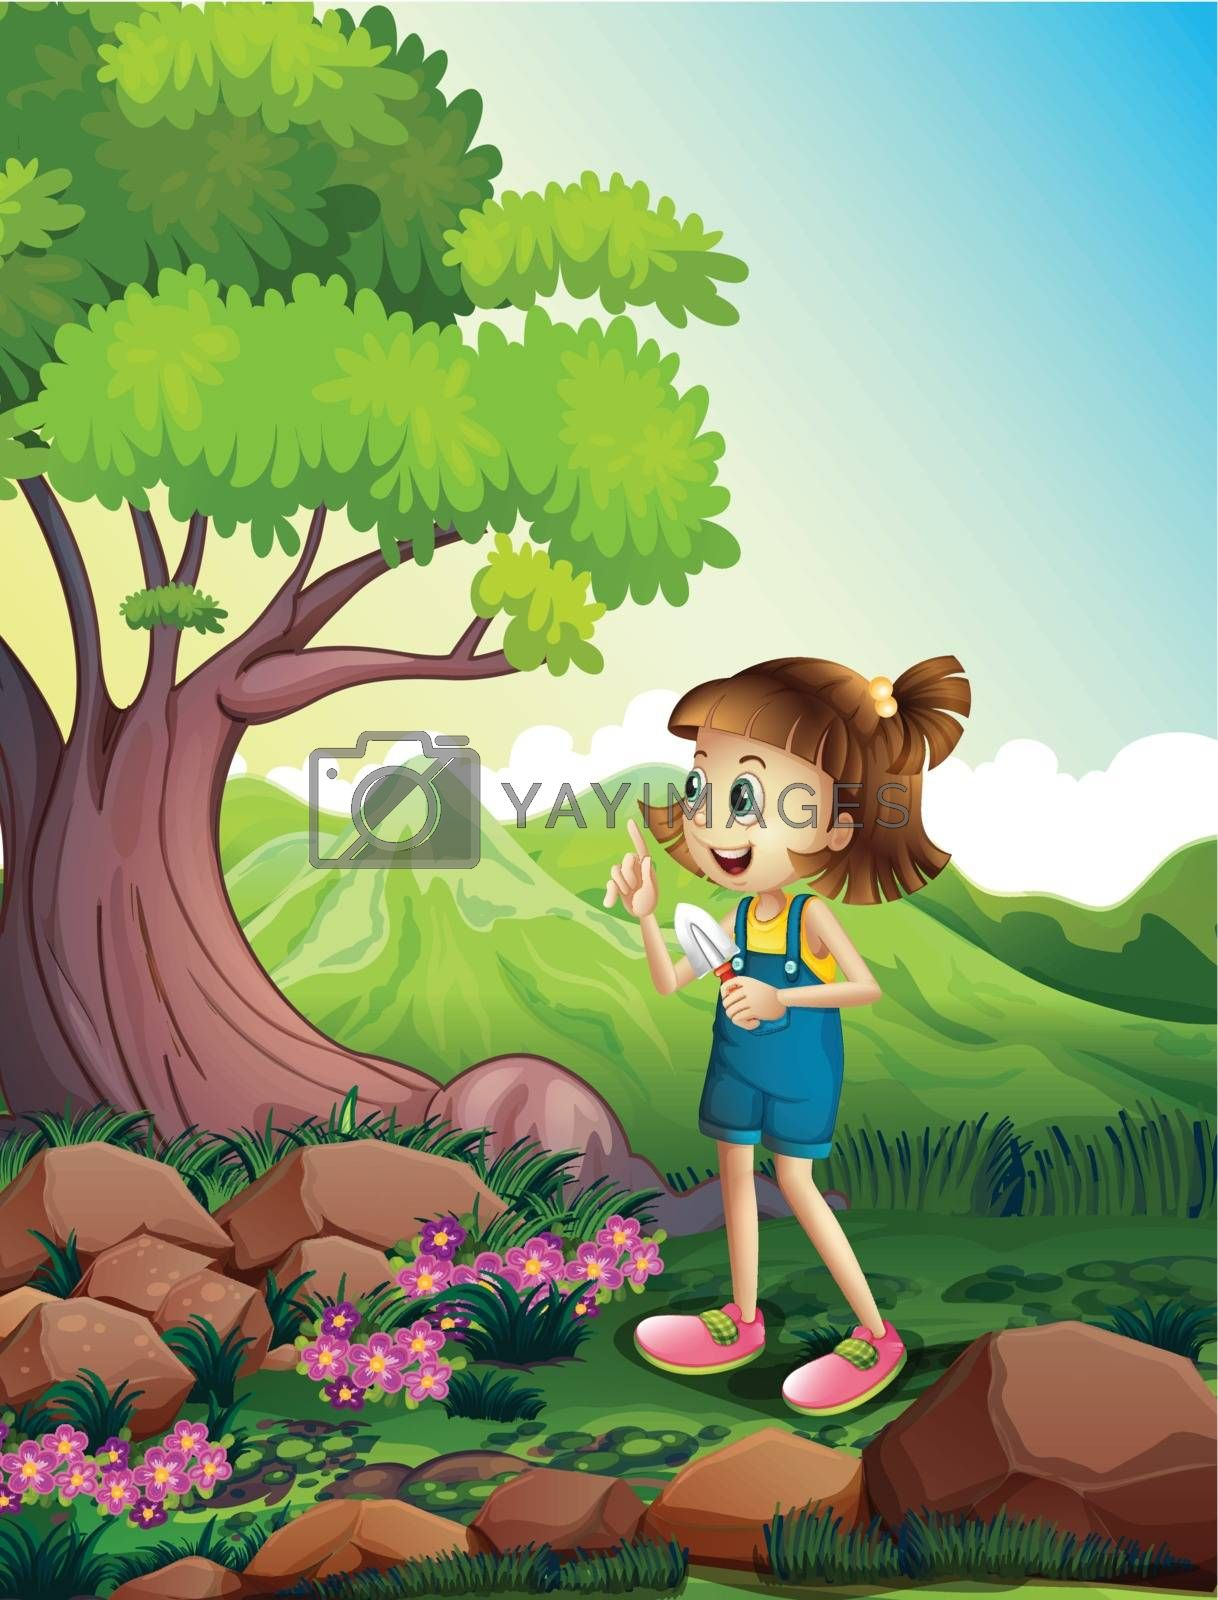 Illustration of a girl holding a shovel at the forest